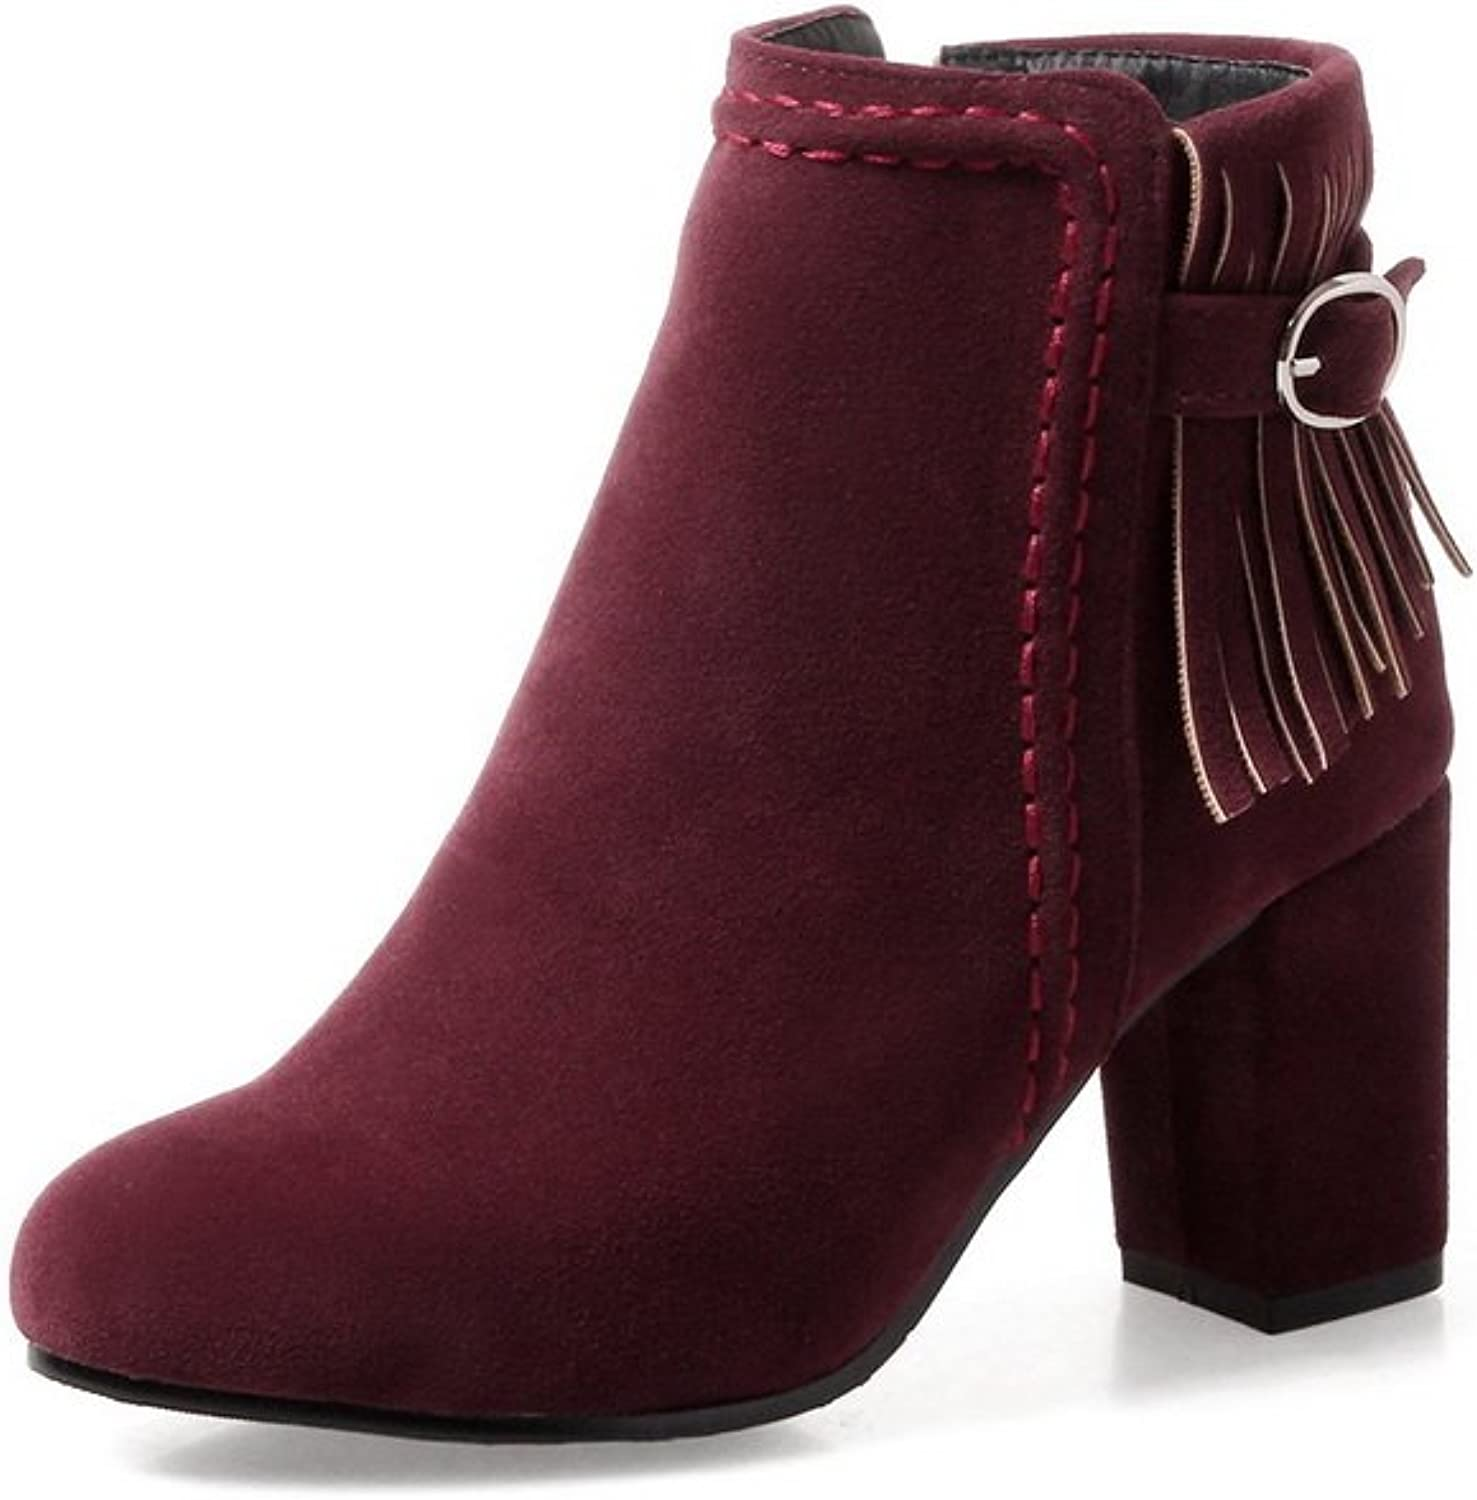 BalaMasa Womens Fashion Slip-Resistant Tassels Suede Boots ABL10122